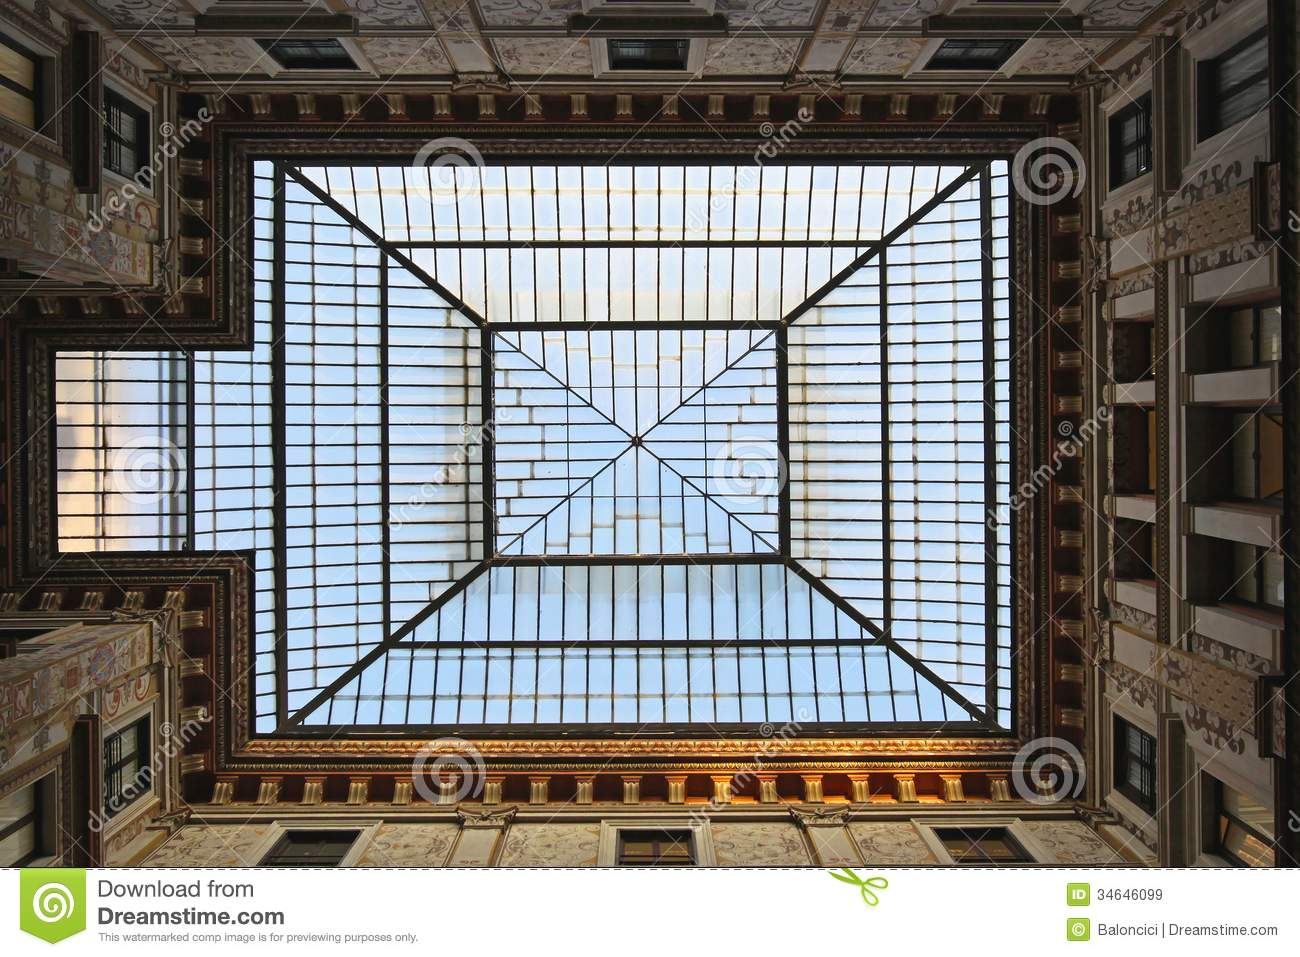 Window In Ceiling skylight royalty free stock images - image: 34646099